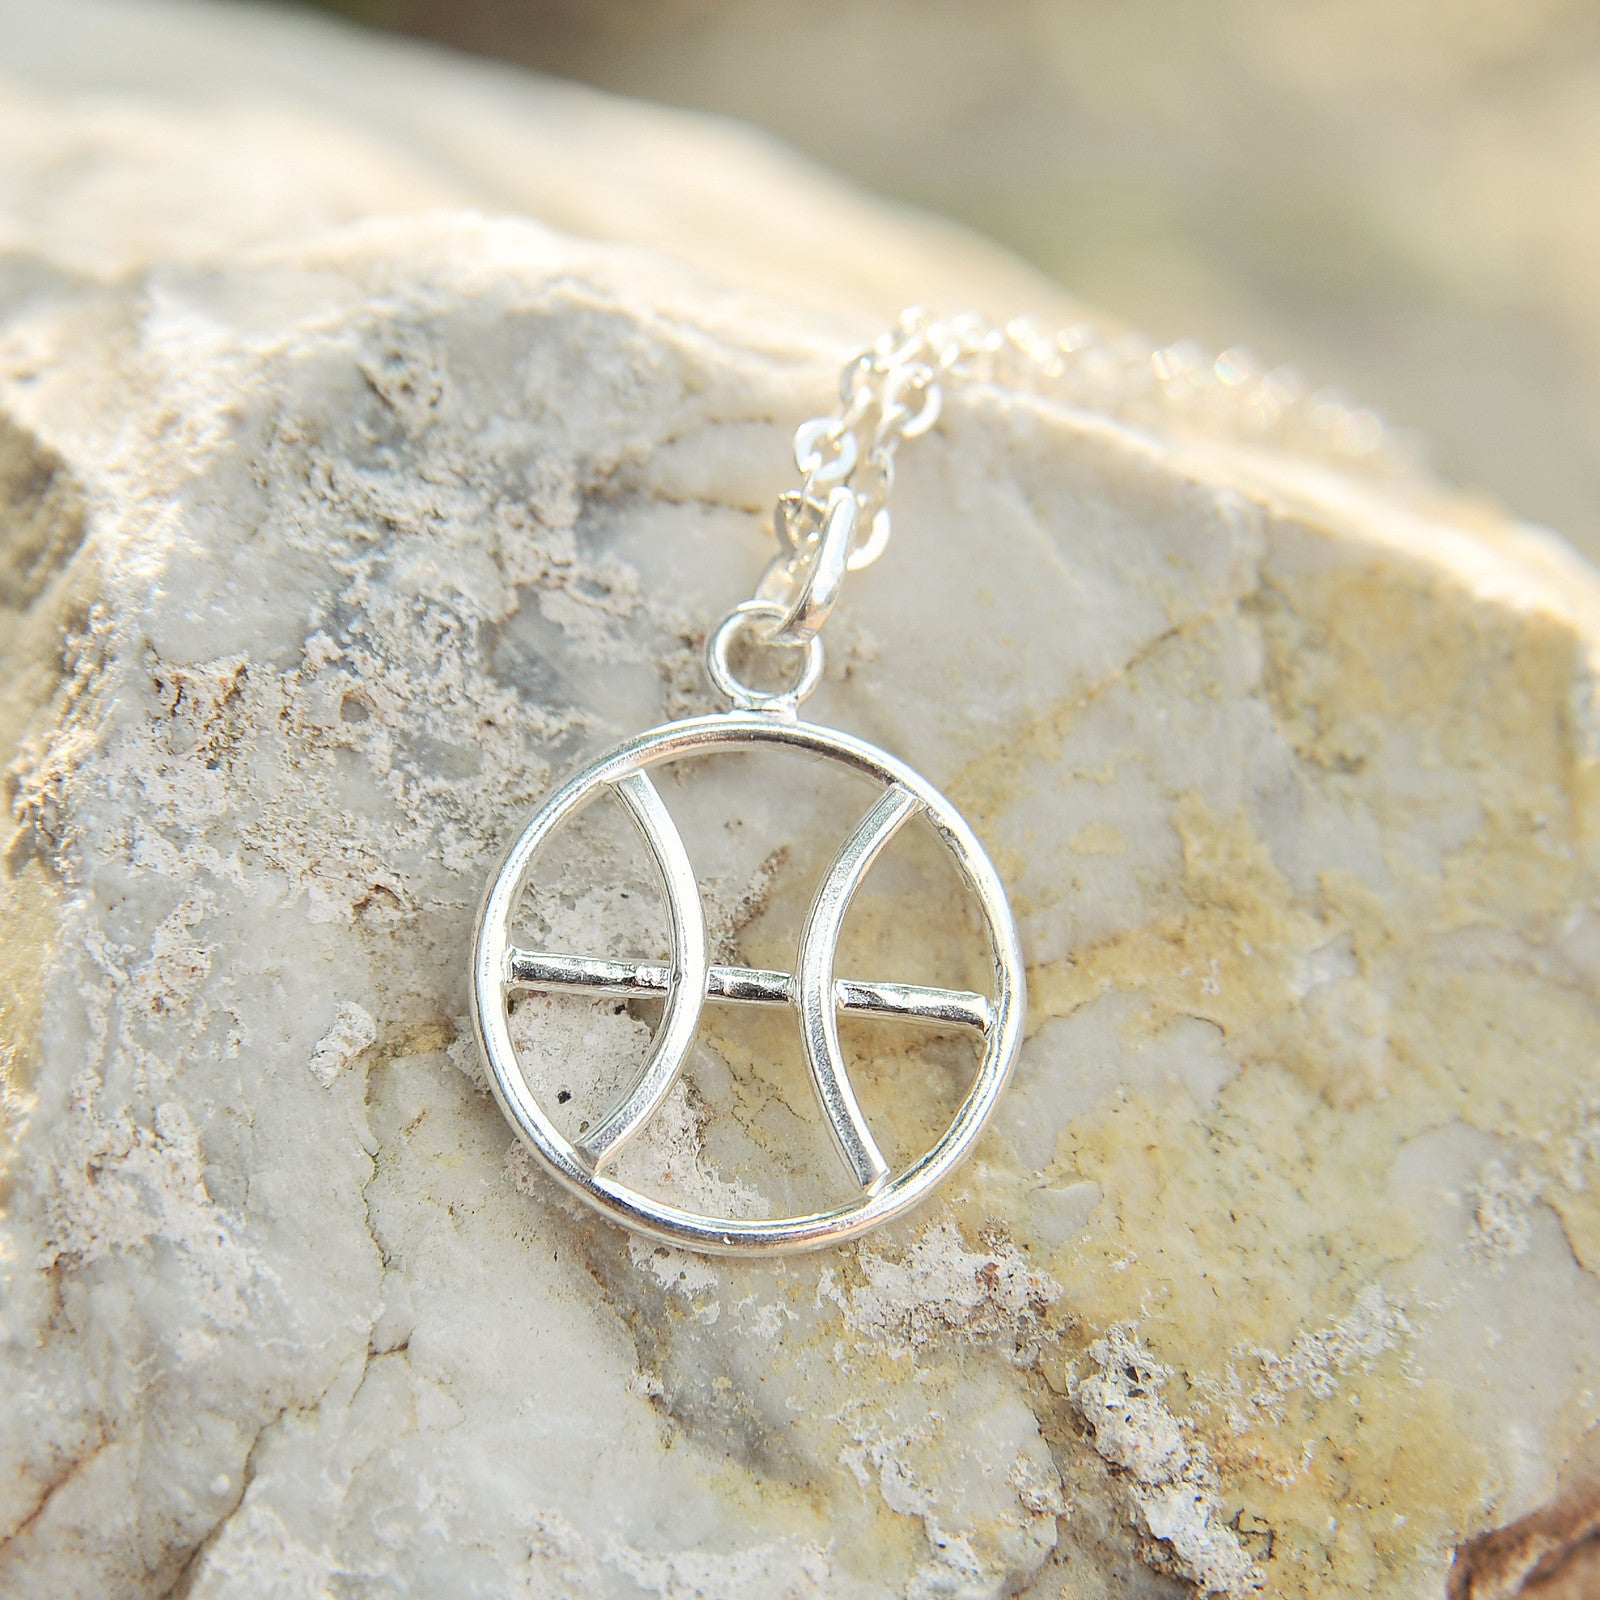 Pisces Horoscope Sign Sterling Silver pendant necklace